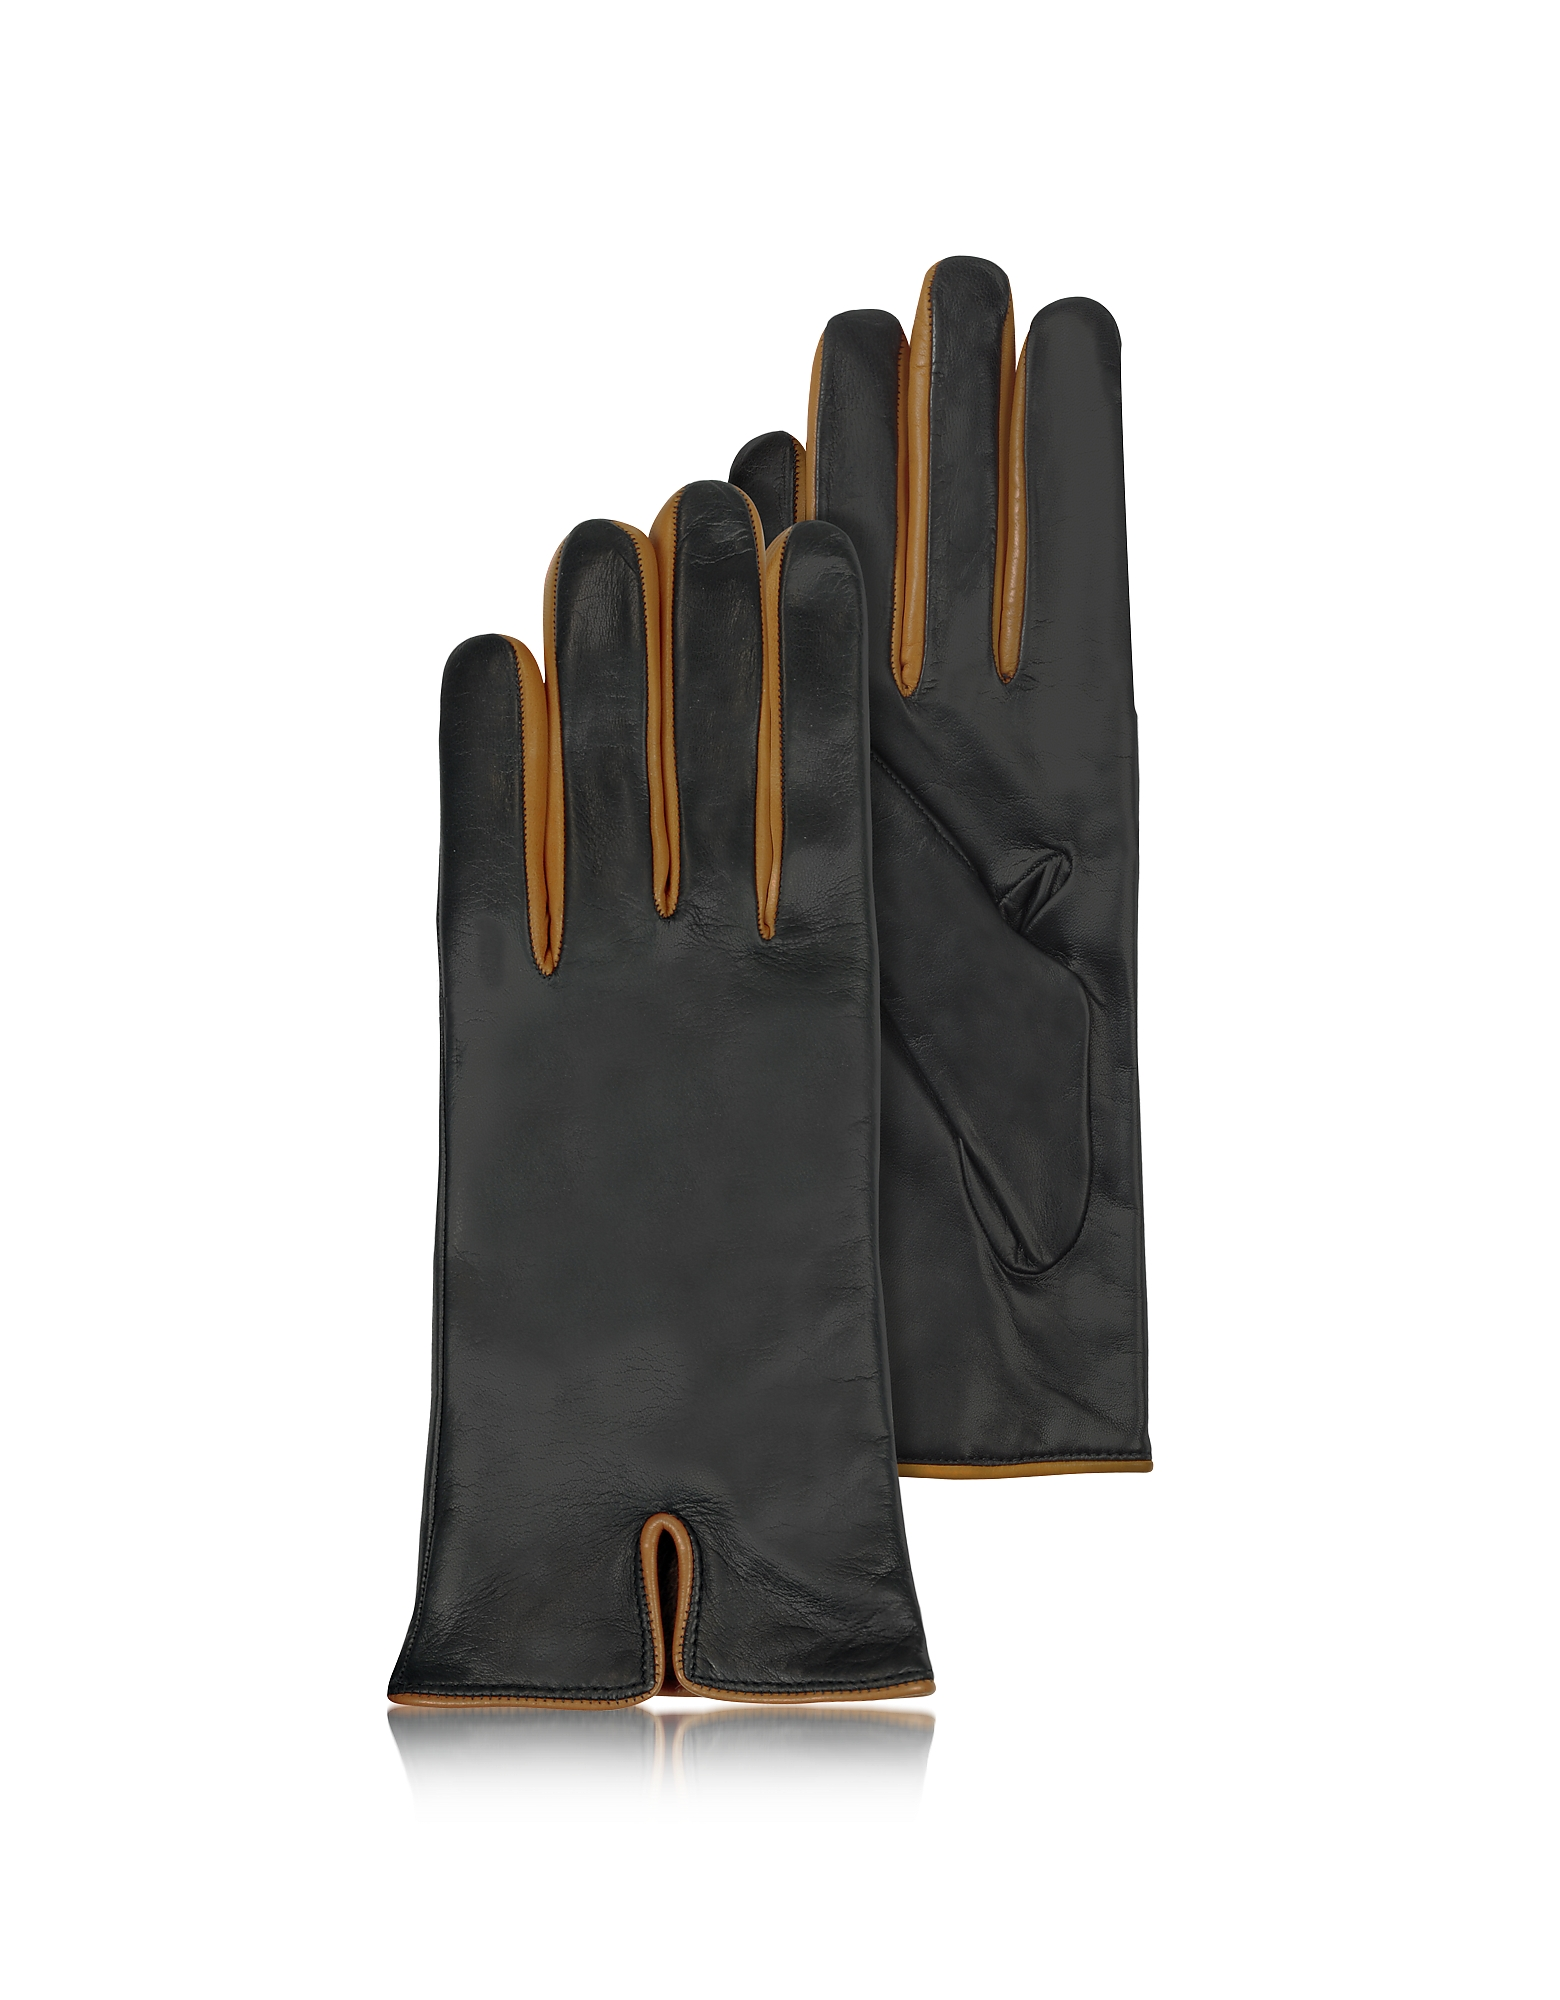 Black & Cognac Cashmere Lined Leather Ladies' Gloves